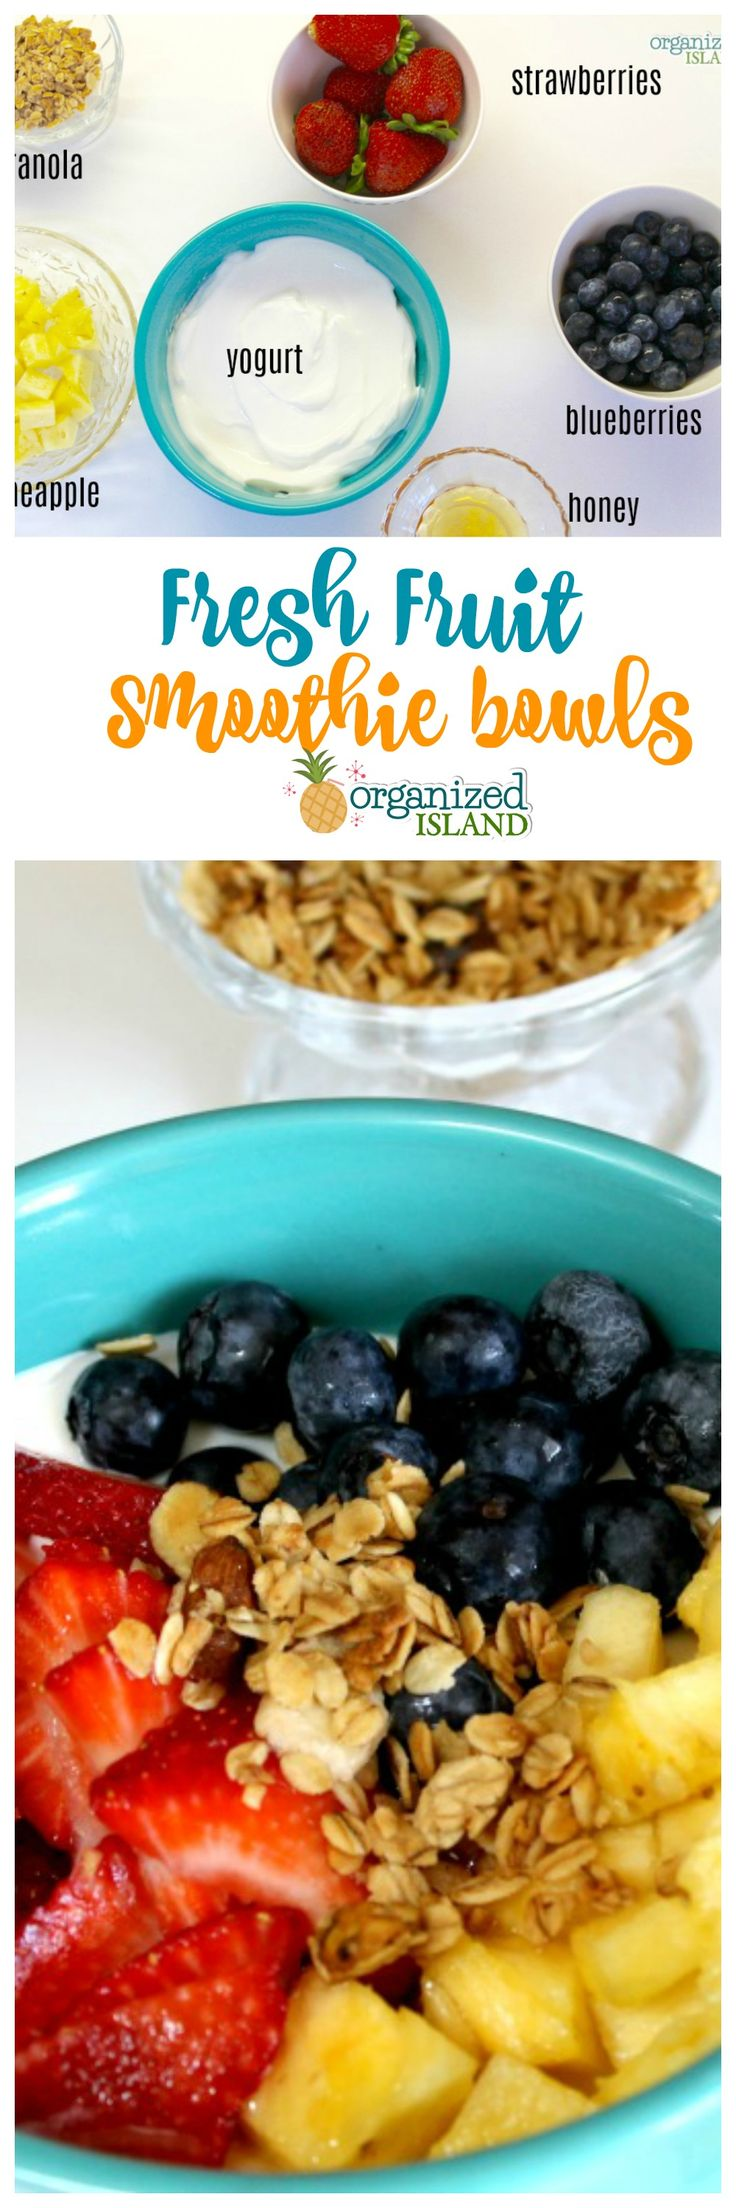 Want a healthy breakfast idea? These fresh fruit smoothie bowls with honey and granola are a nice change!